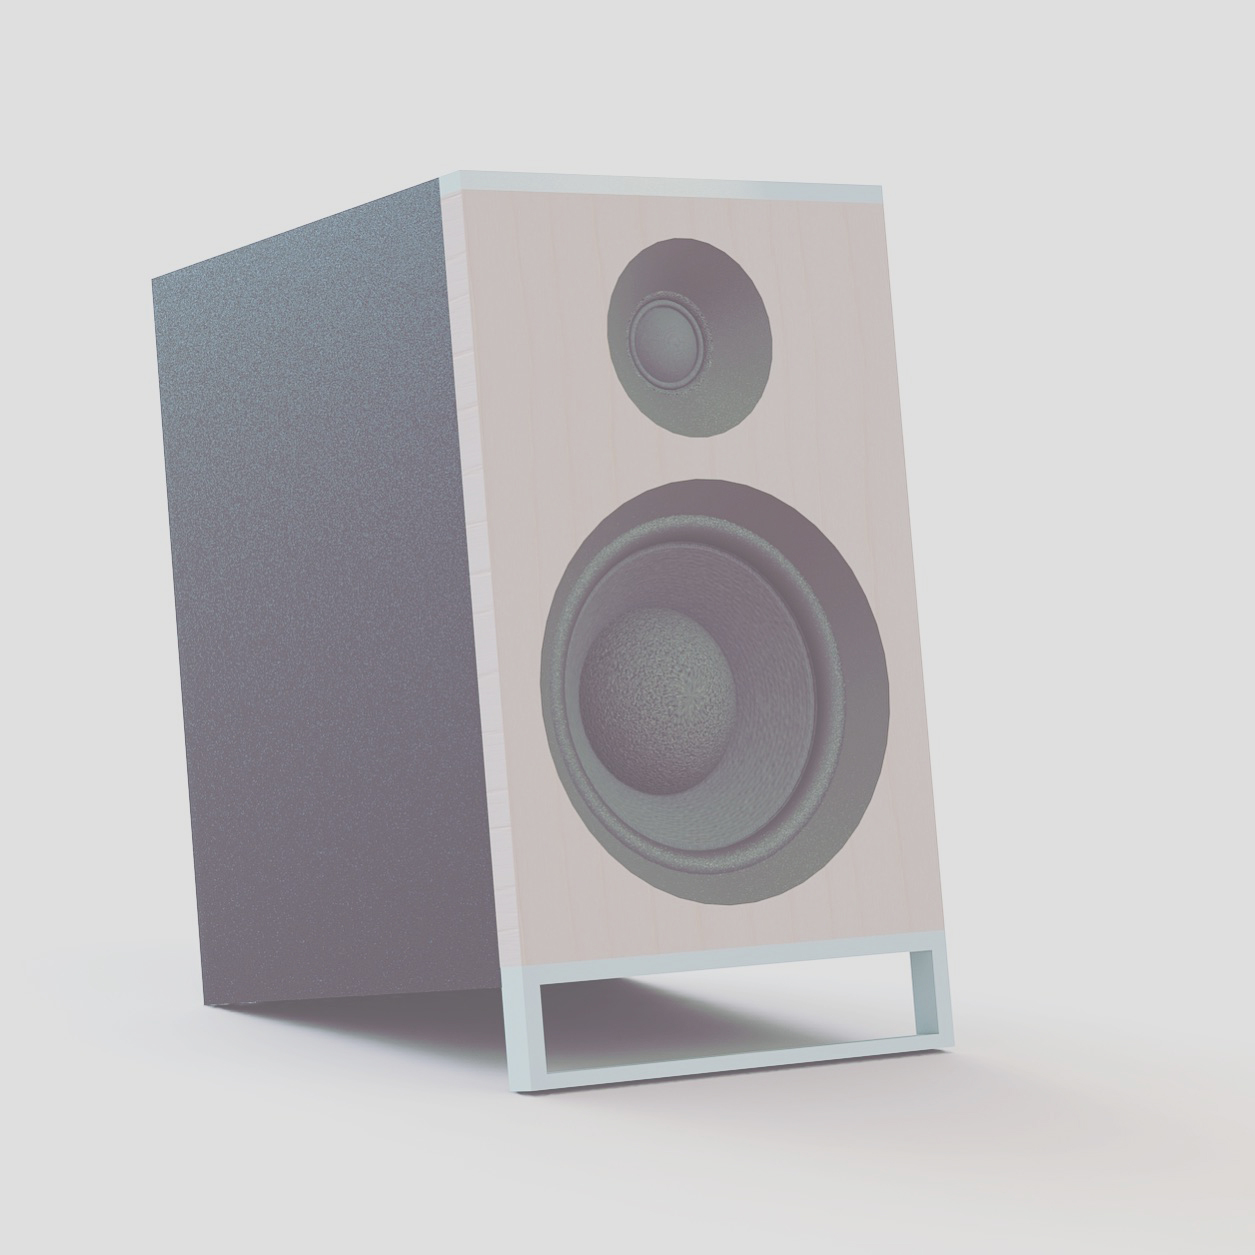 CAD render in Solidworks, shelfspeaker by Sebastian Galo